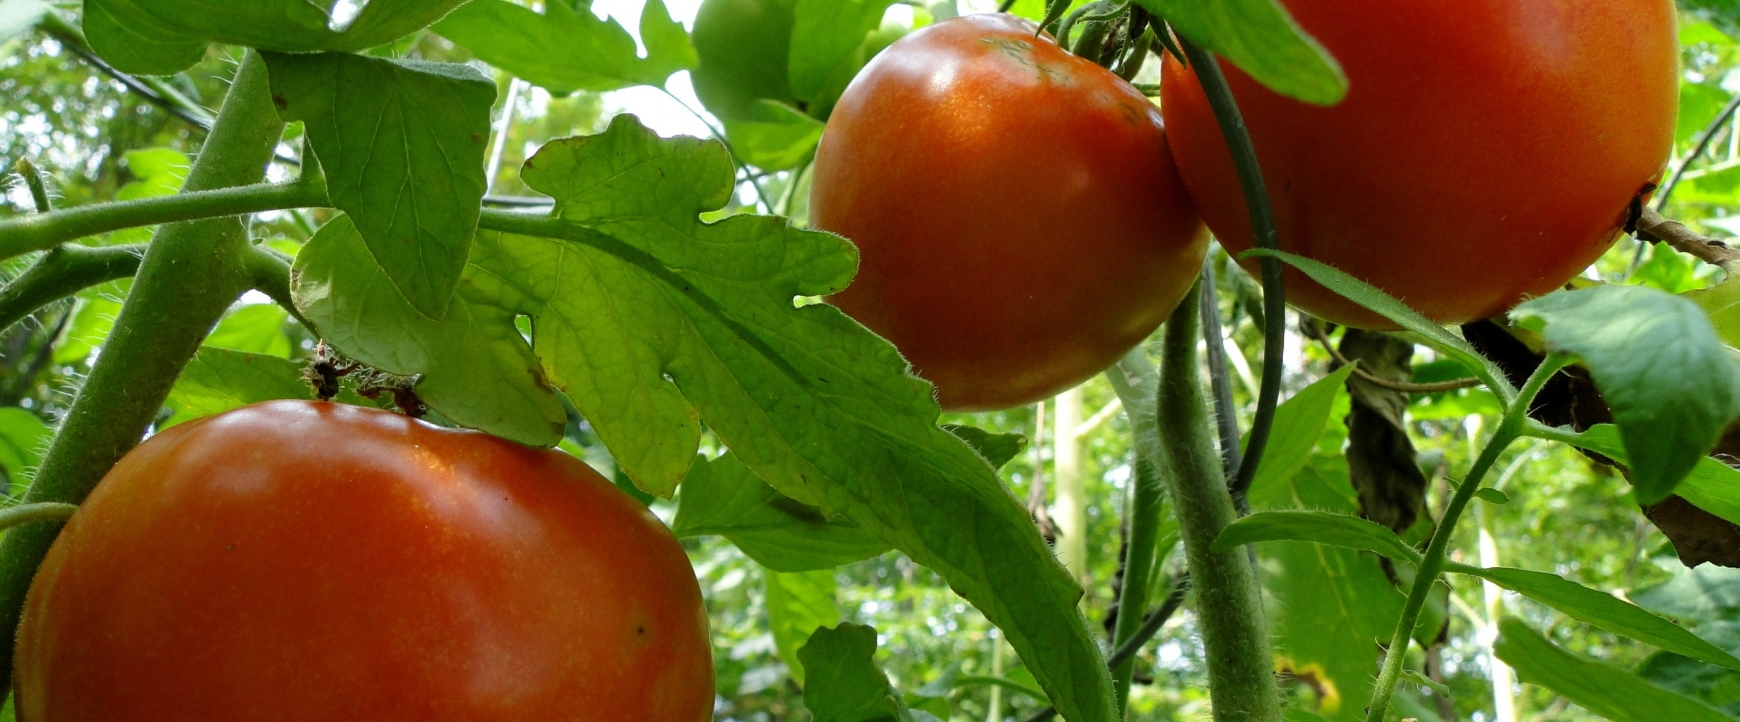 Red tomatoes on a green vine